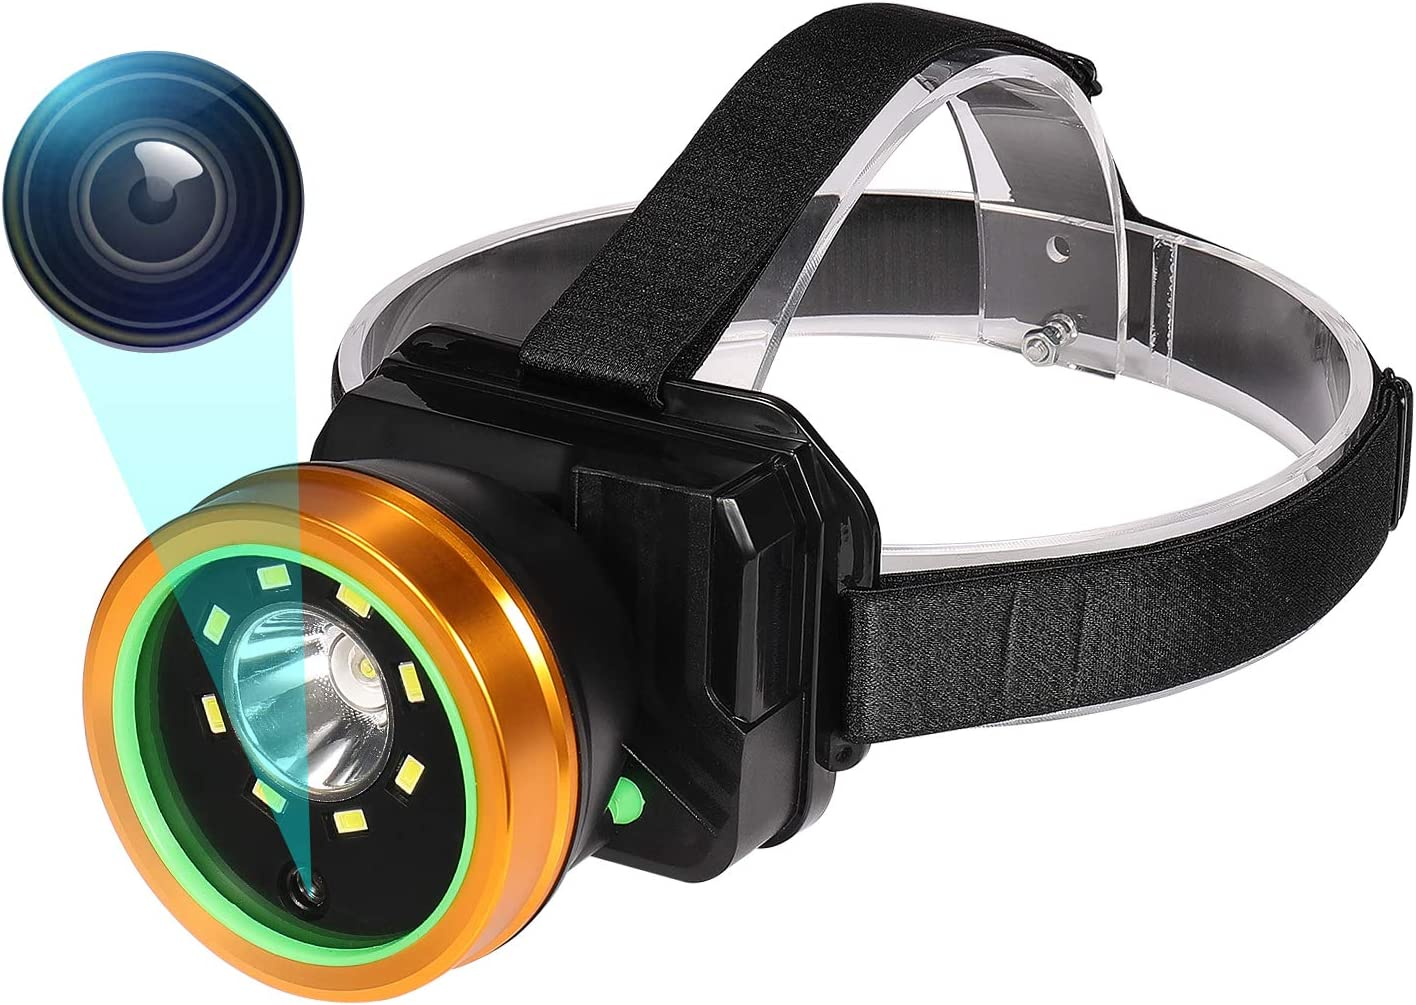 Headlamp Body Camera Built-in 32GB Memory Card with Audio, 1080P Wearable Body Mounted Camera Rechargeable IPX4 Waterproof Night Visionfor, Camping, Hiking, Fishing. (Gold-0GB)